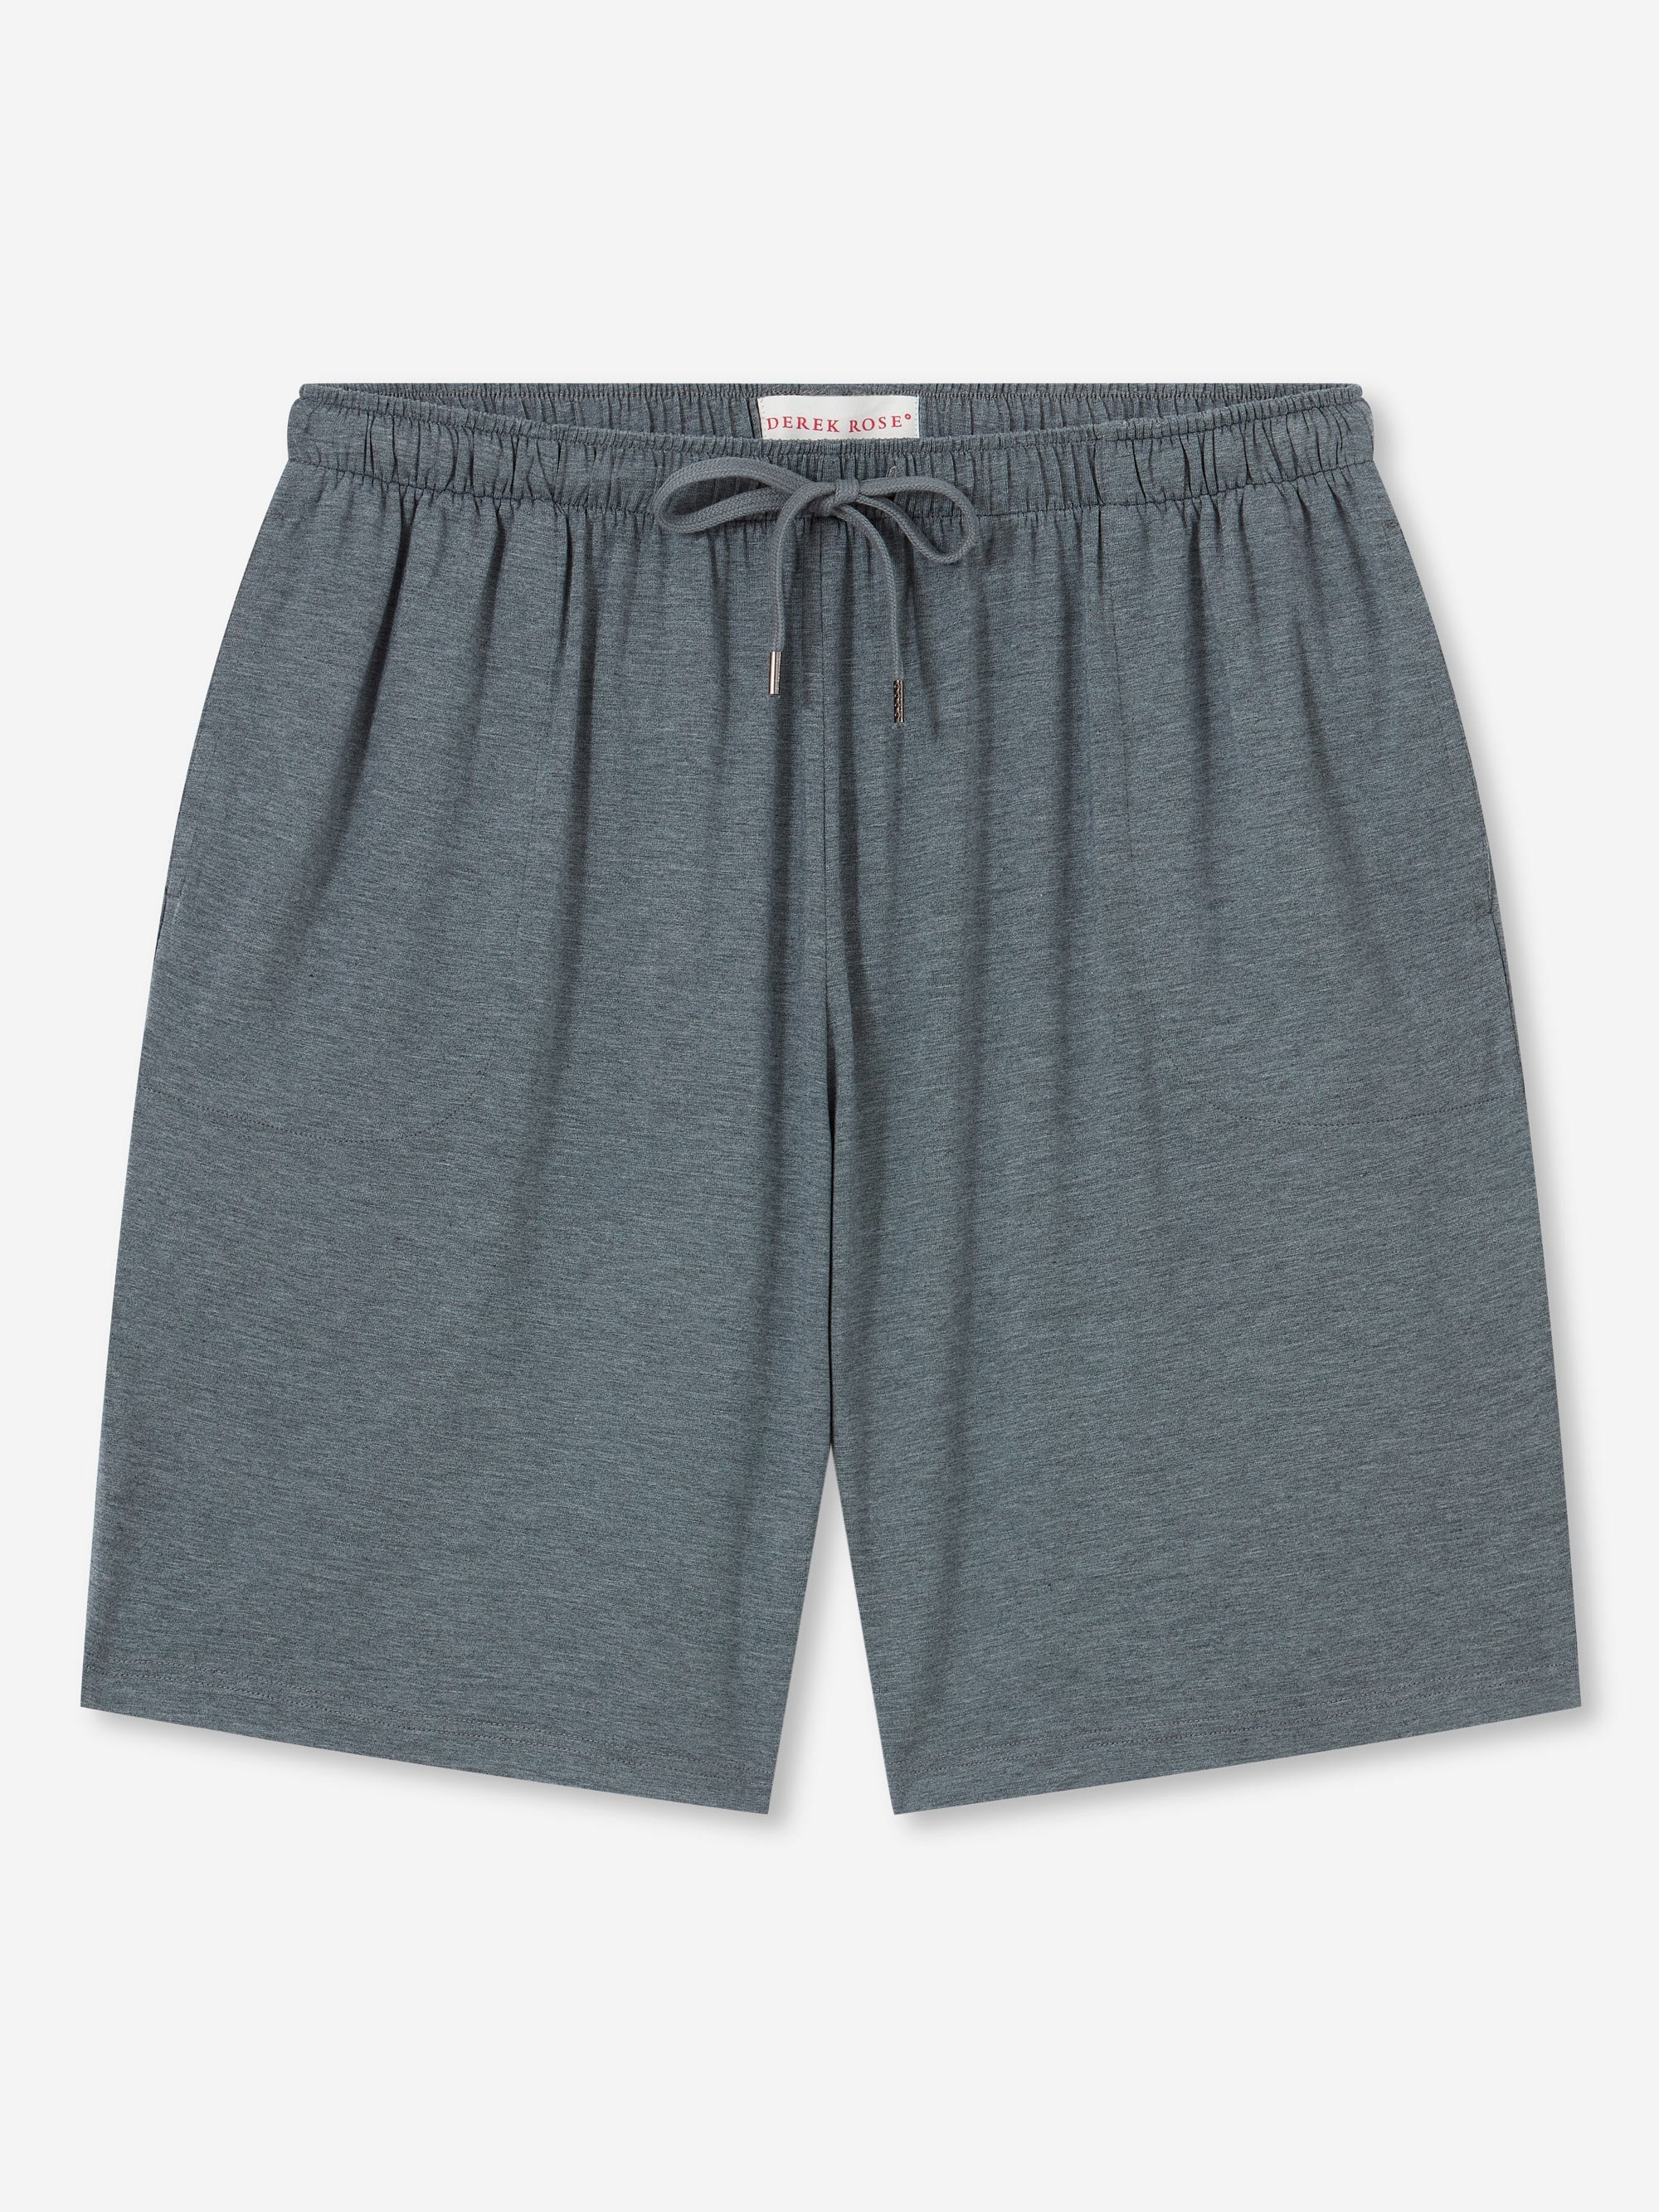 Men's Jersey Shorts Marlowe Micro Modal Stretch Charcoal